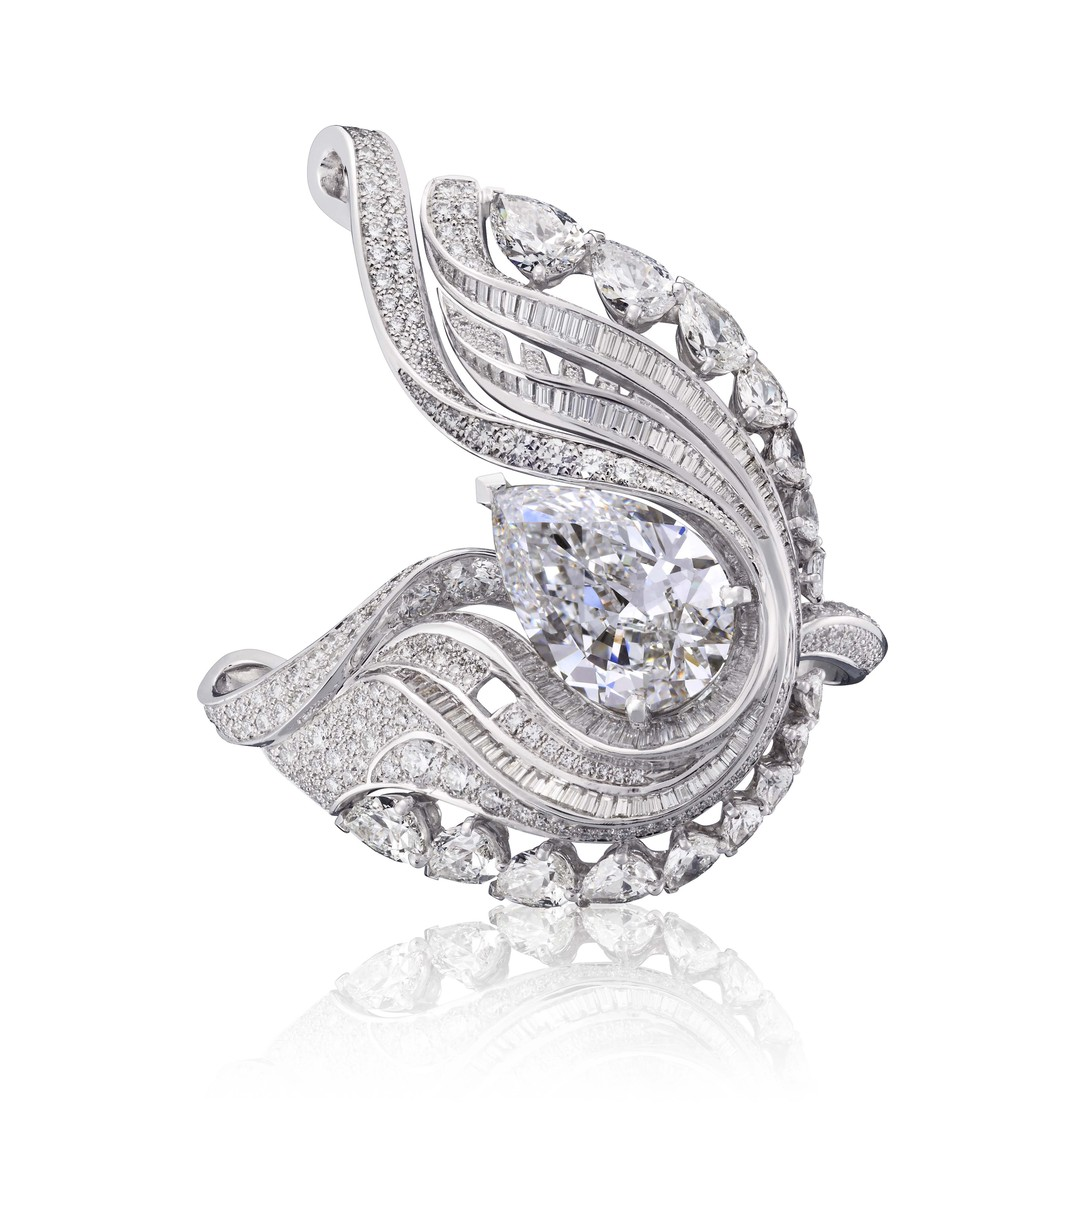 De Beers 1888 Creative Solitaires Imaginary Nature Embrace ring, set with a central 8.88ct pear-cut diamond.